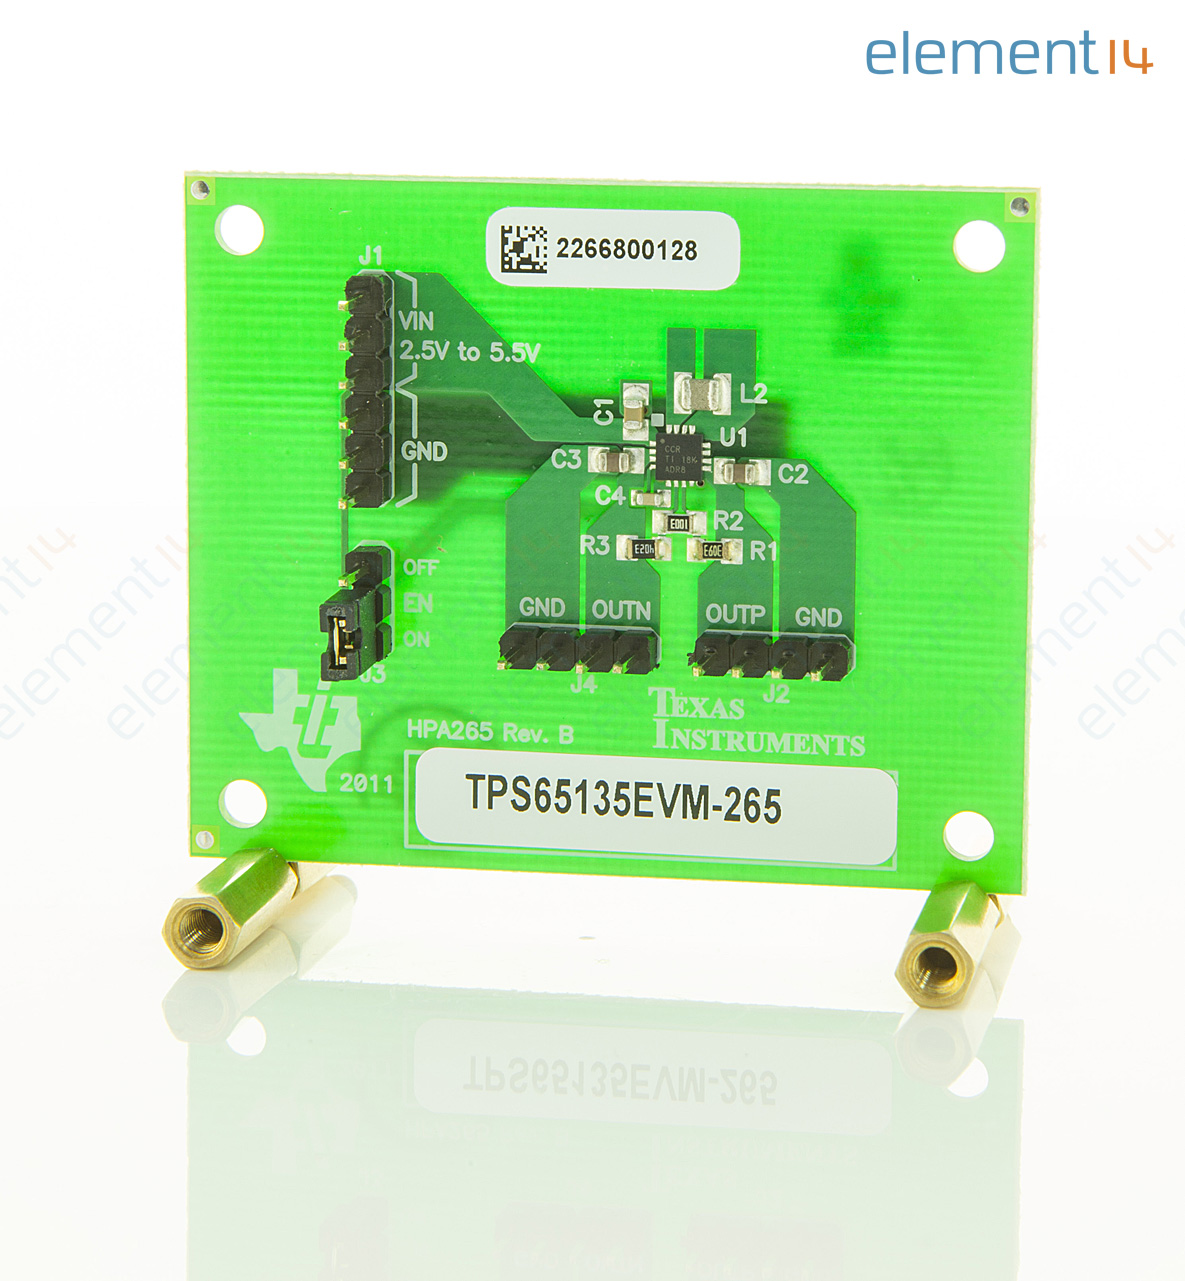 Tps65135evm 265 Texas Instruments Evaluation Board For Dc Lm337lz Voltage Regulator Integrated Circuit To92 Add To Compare